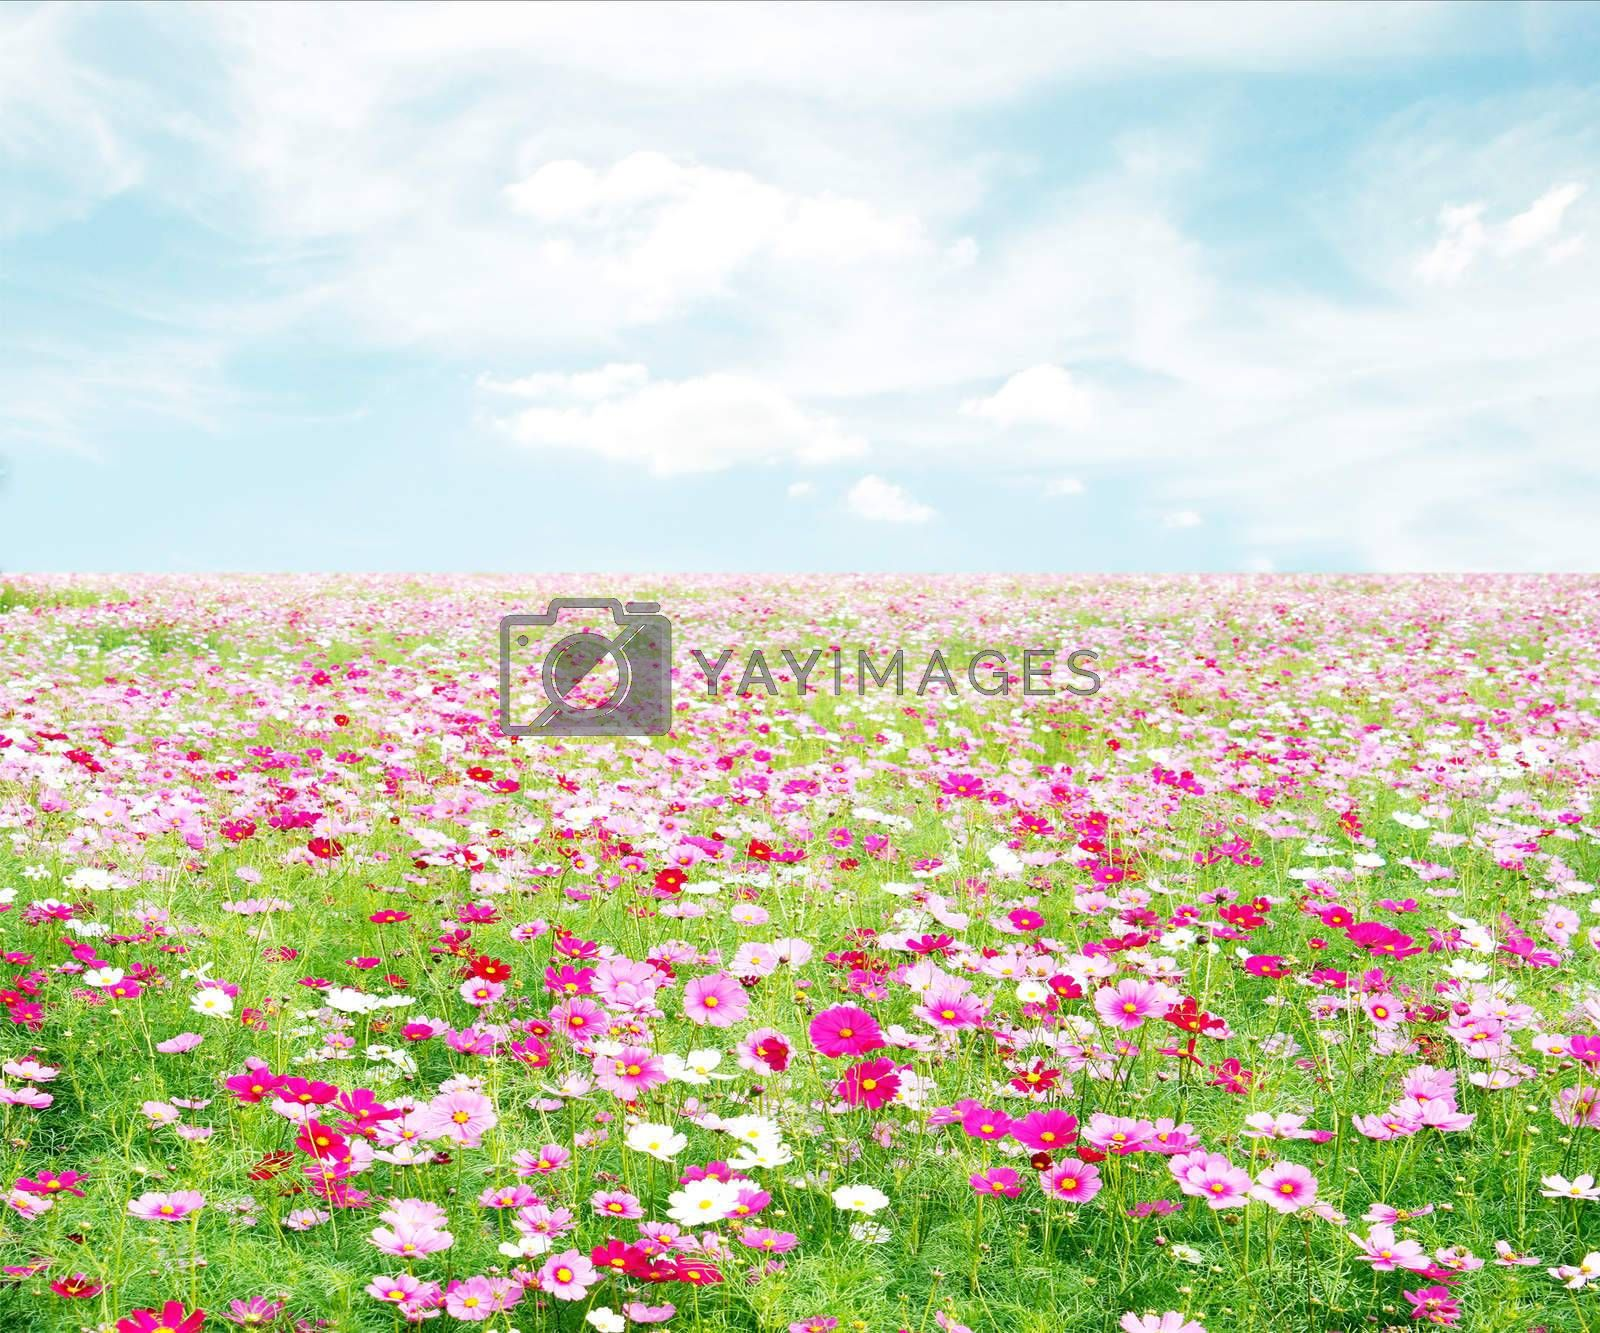 Royalty free image of cosmos flowers fields with sky by studio2013